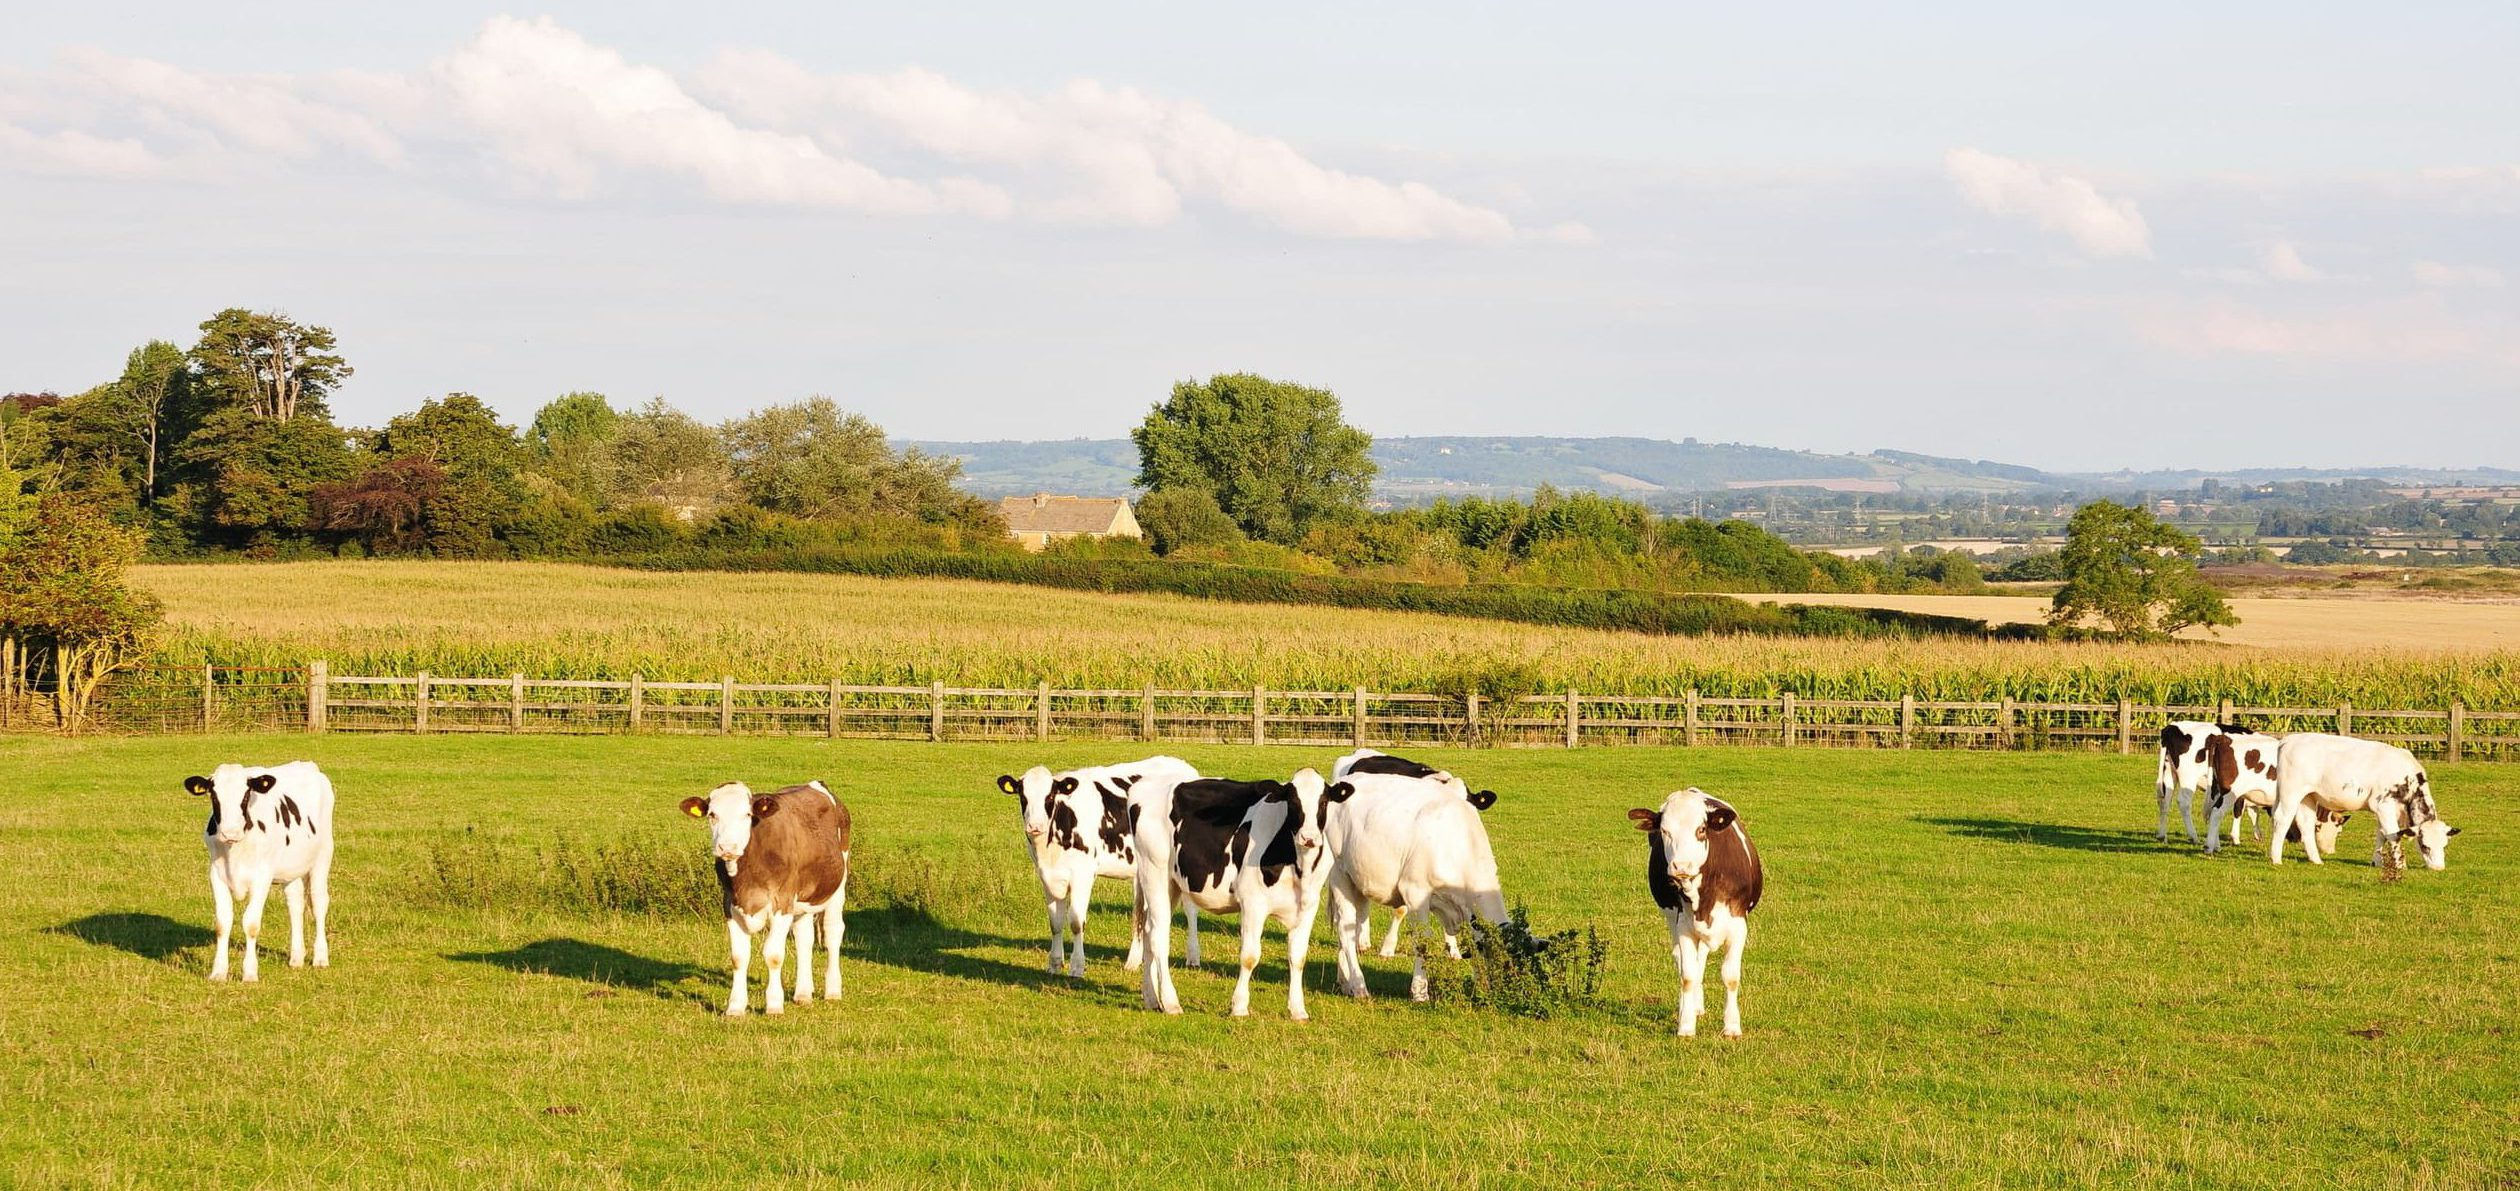 Young cows in a field - Bovine TB